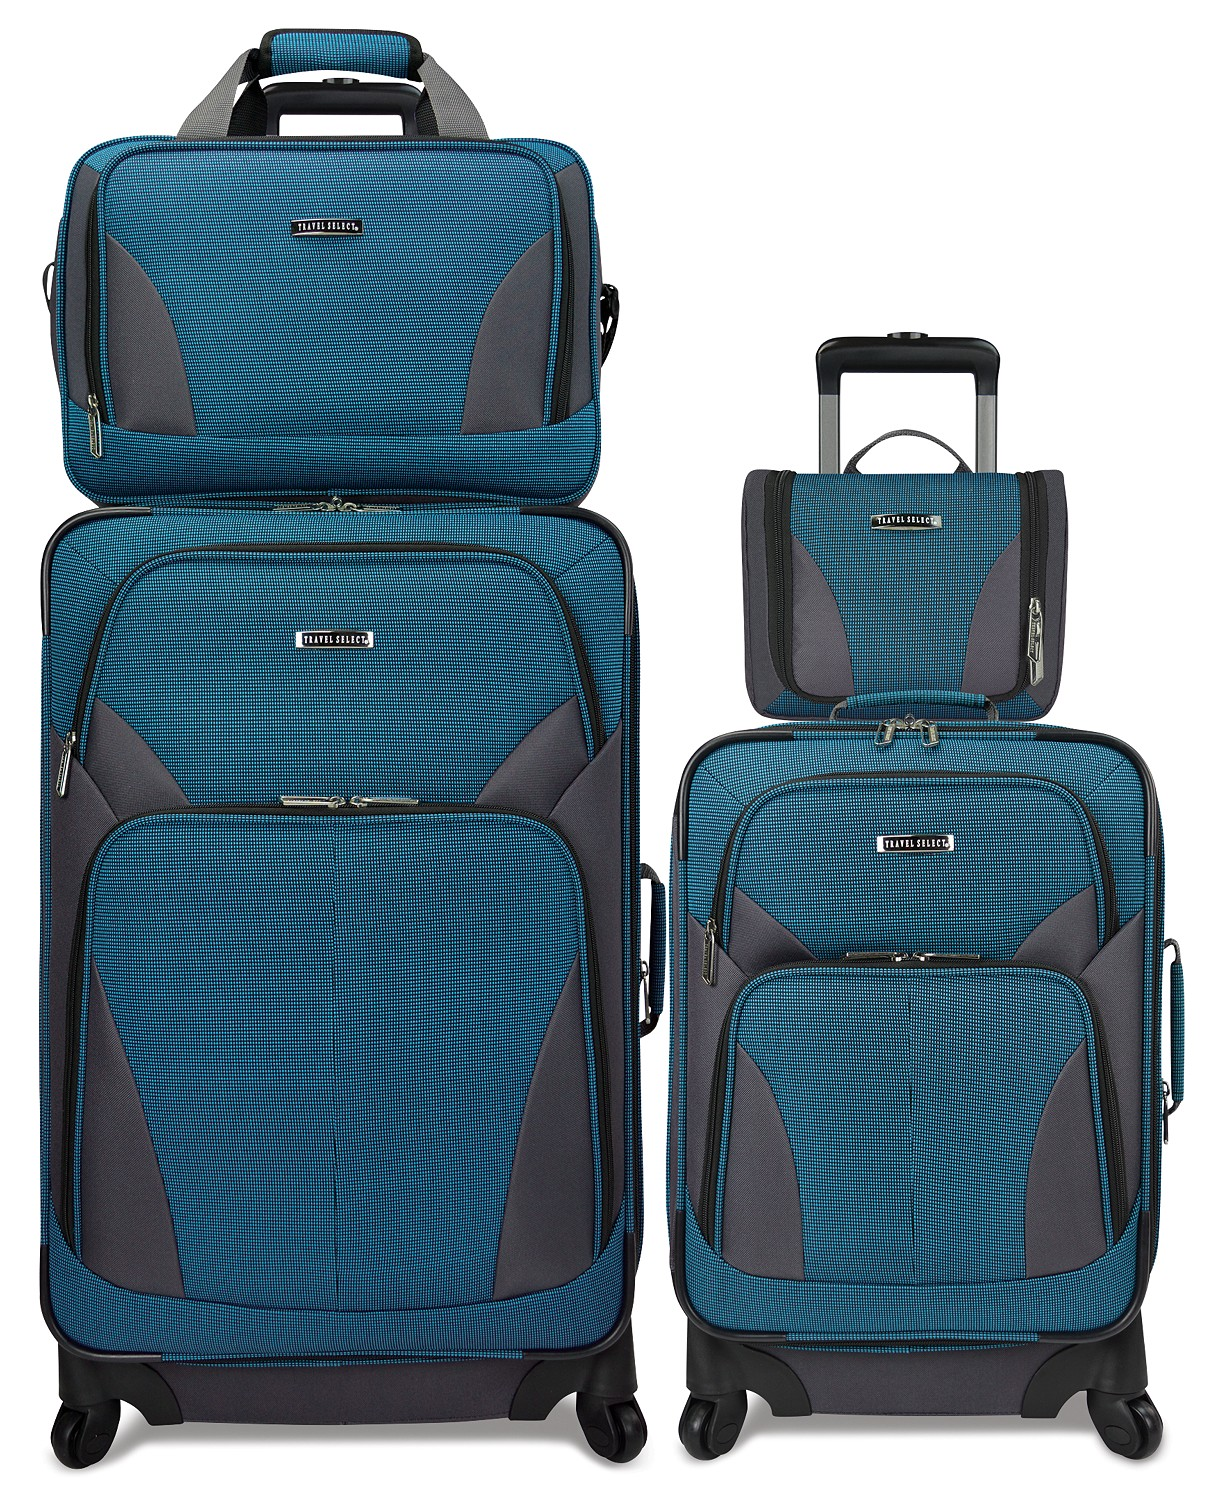 Travel Select Allentown 4-Piece Spinner Luggage Set (Turquoise / Gray)